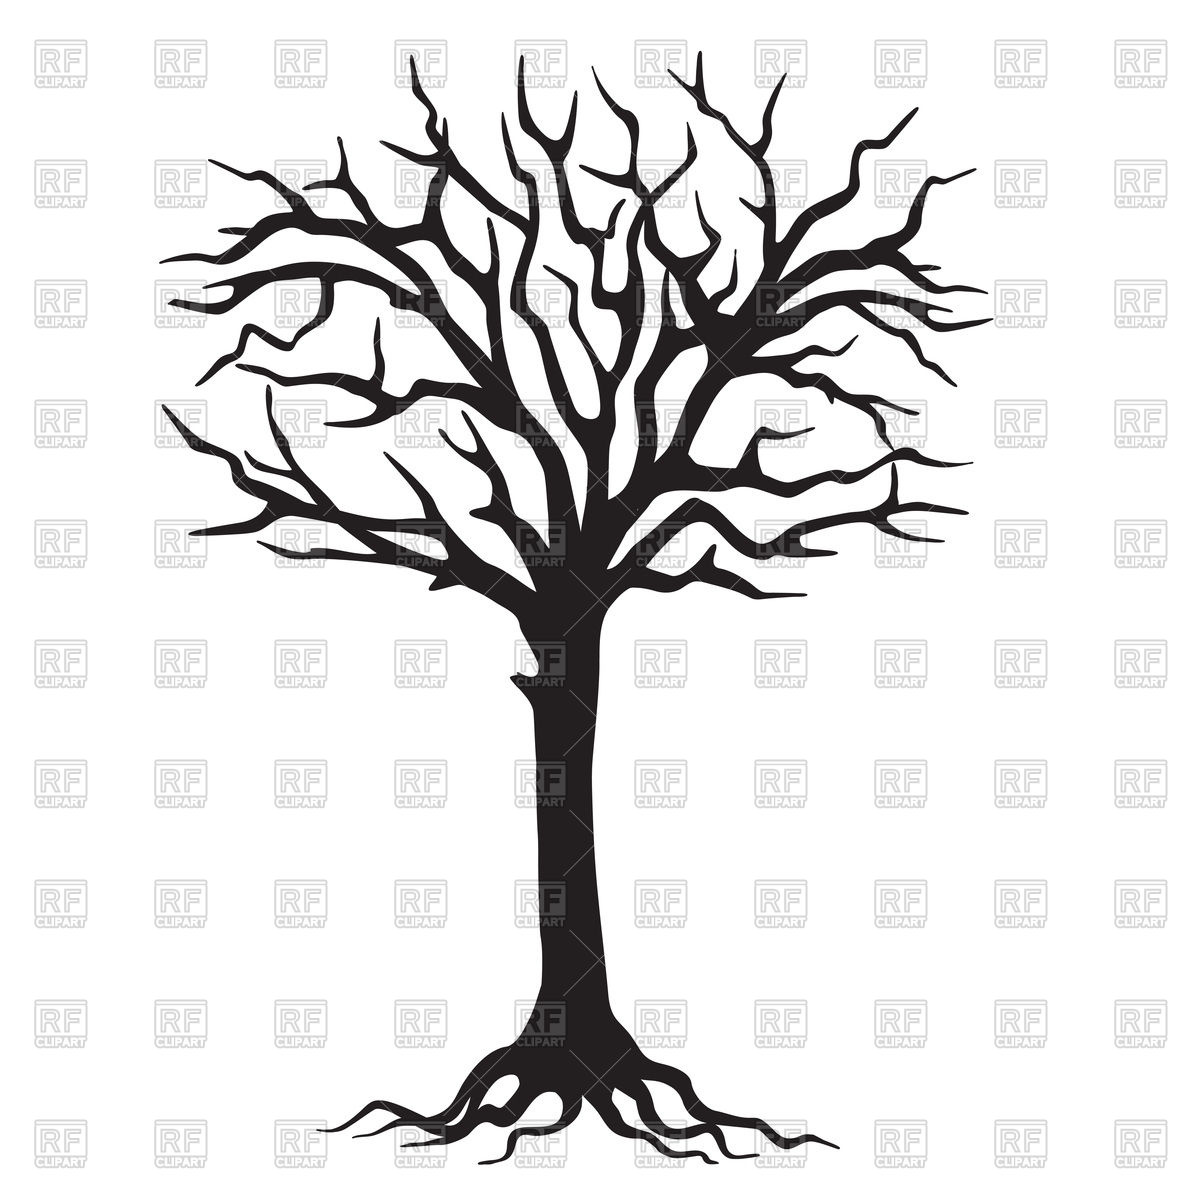 Hand drawn black silhouette tree with roots Stock Vector Image.